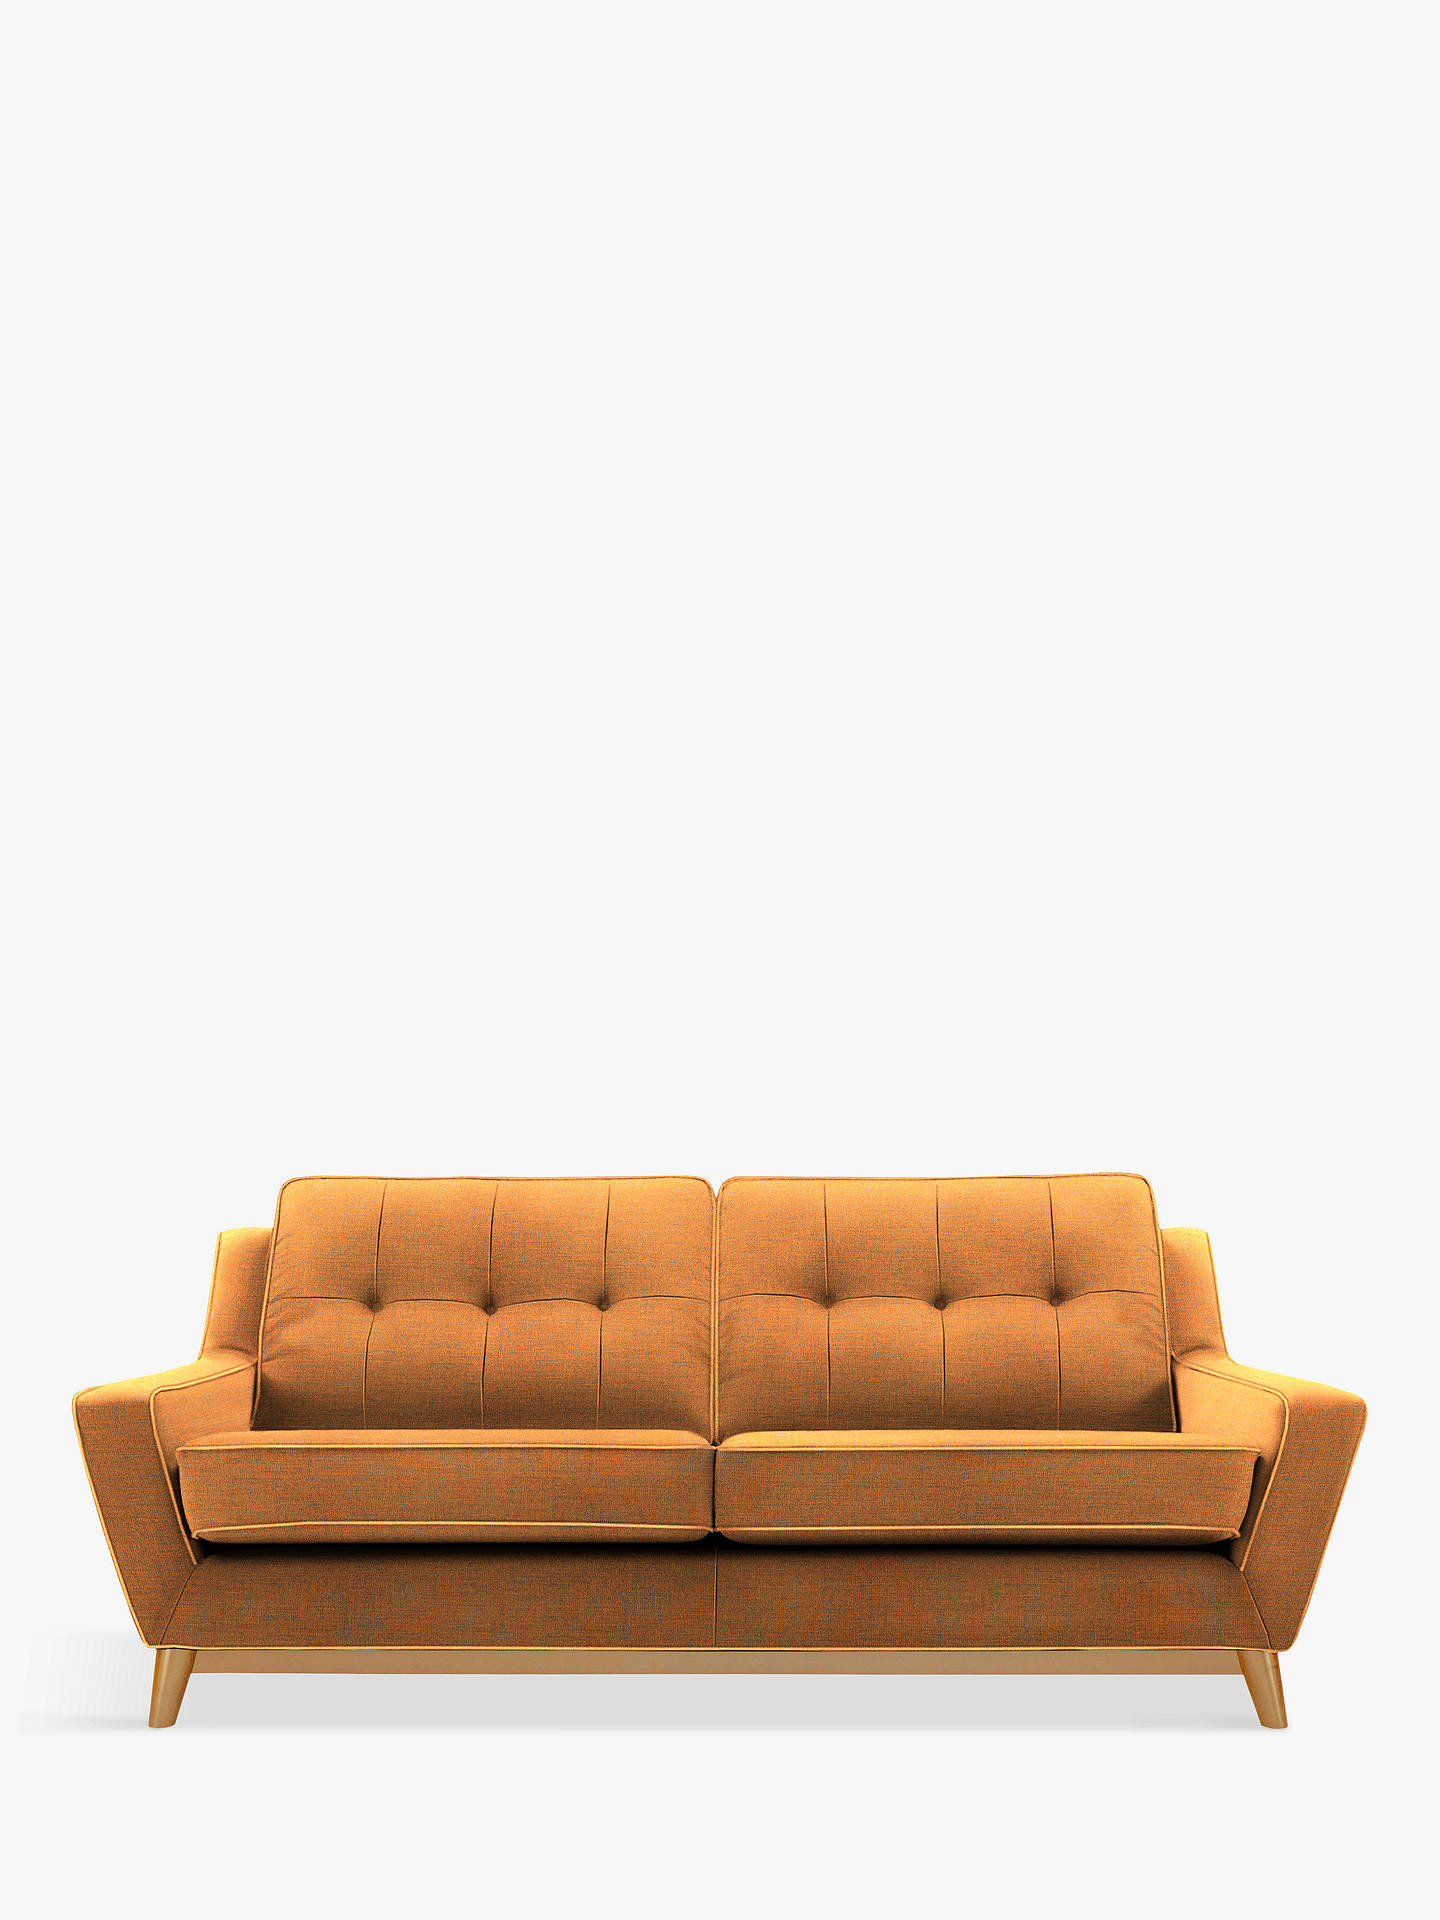 G Plan Vintage The Fifty Three Large 3 Seater Sofa Ash Leg Flurry Tangerine